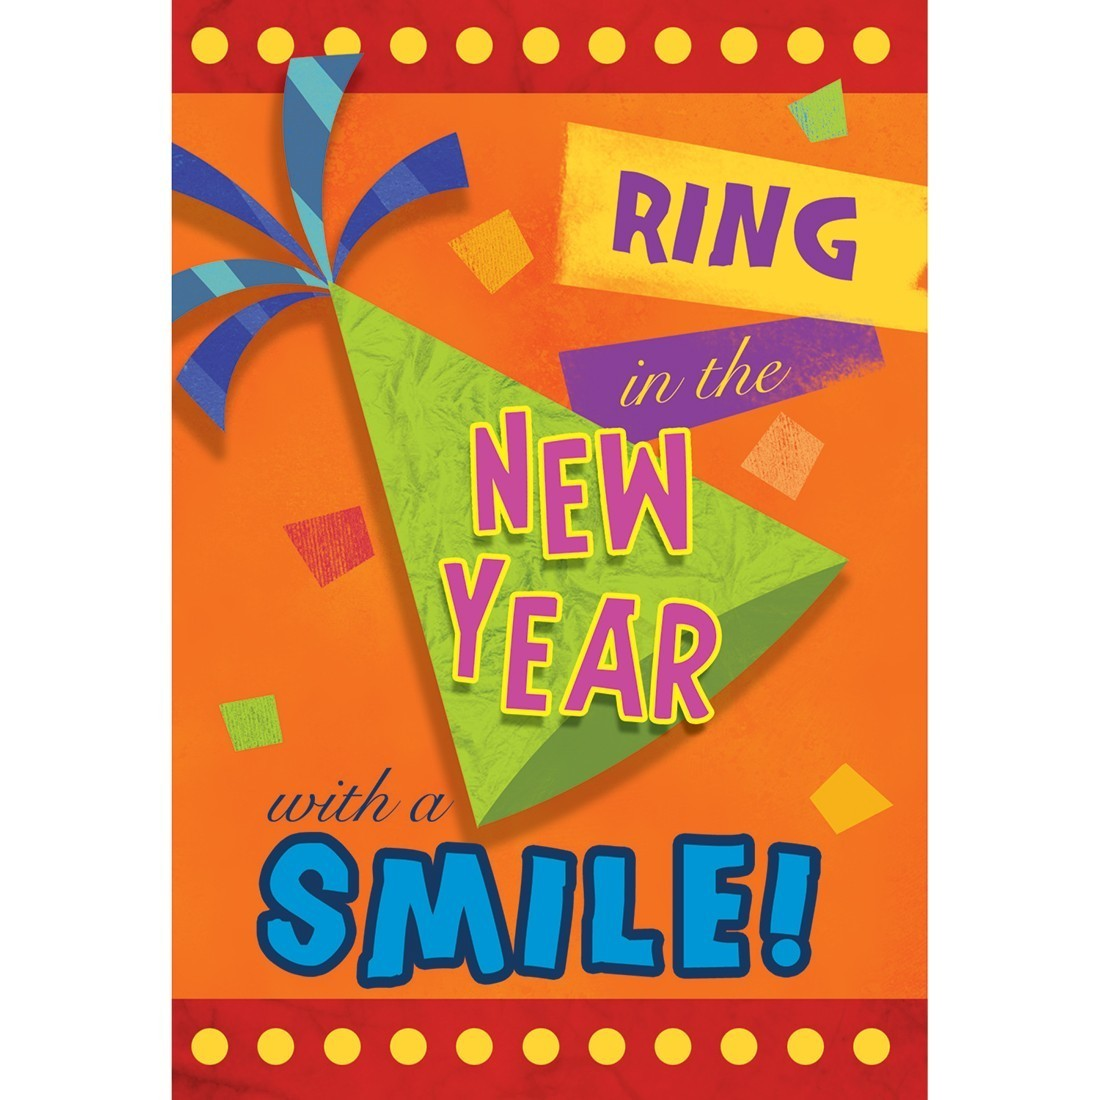 New Year Smile Greeting Cards [image]